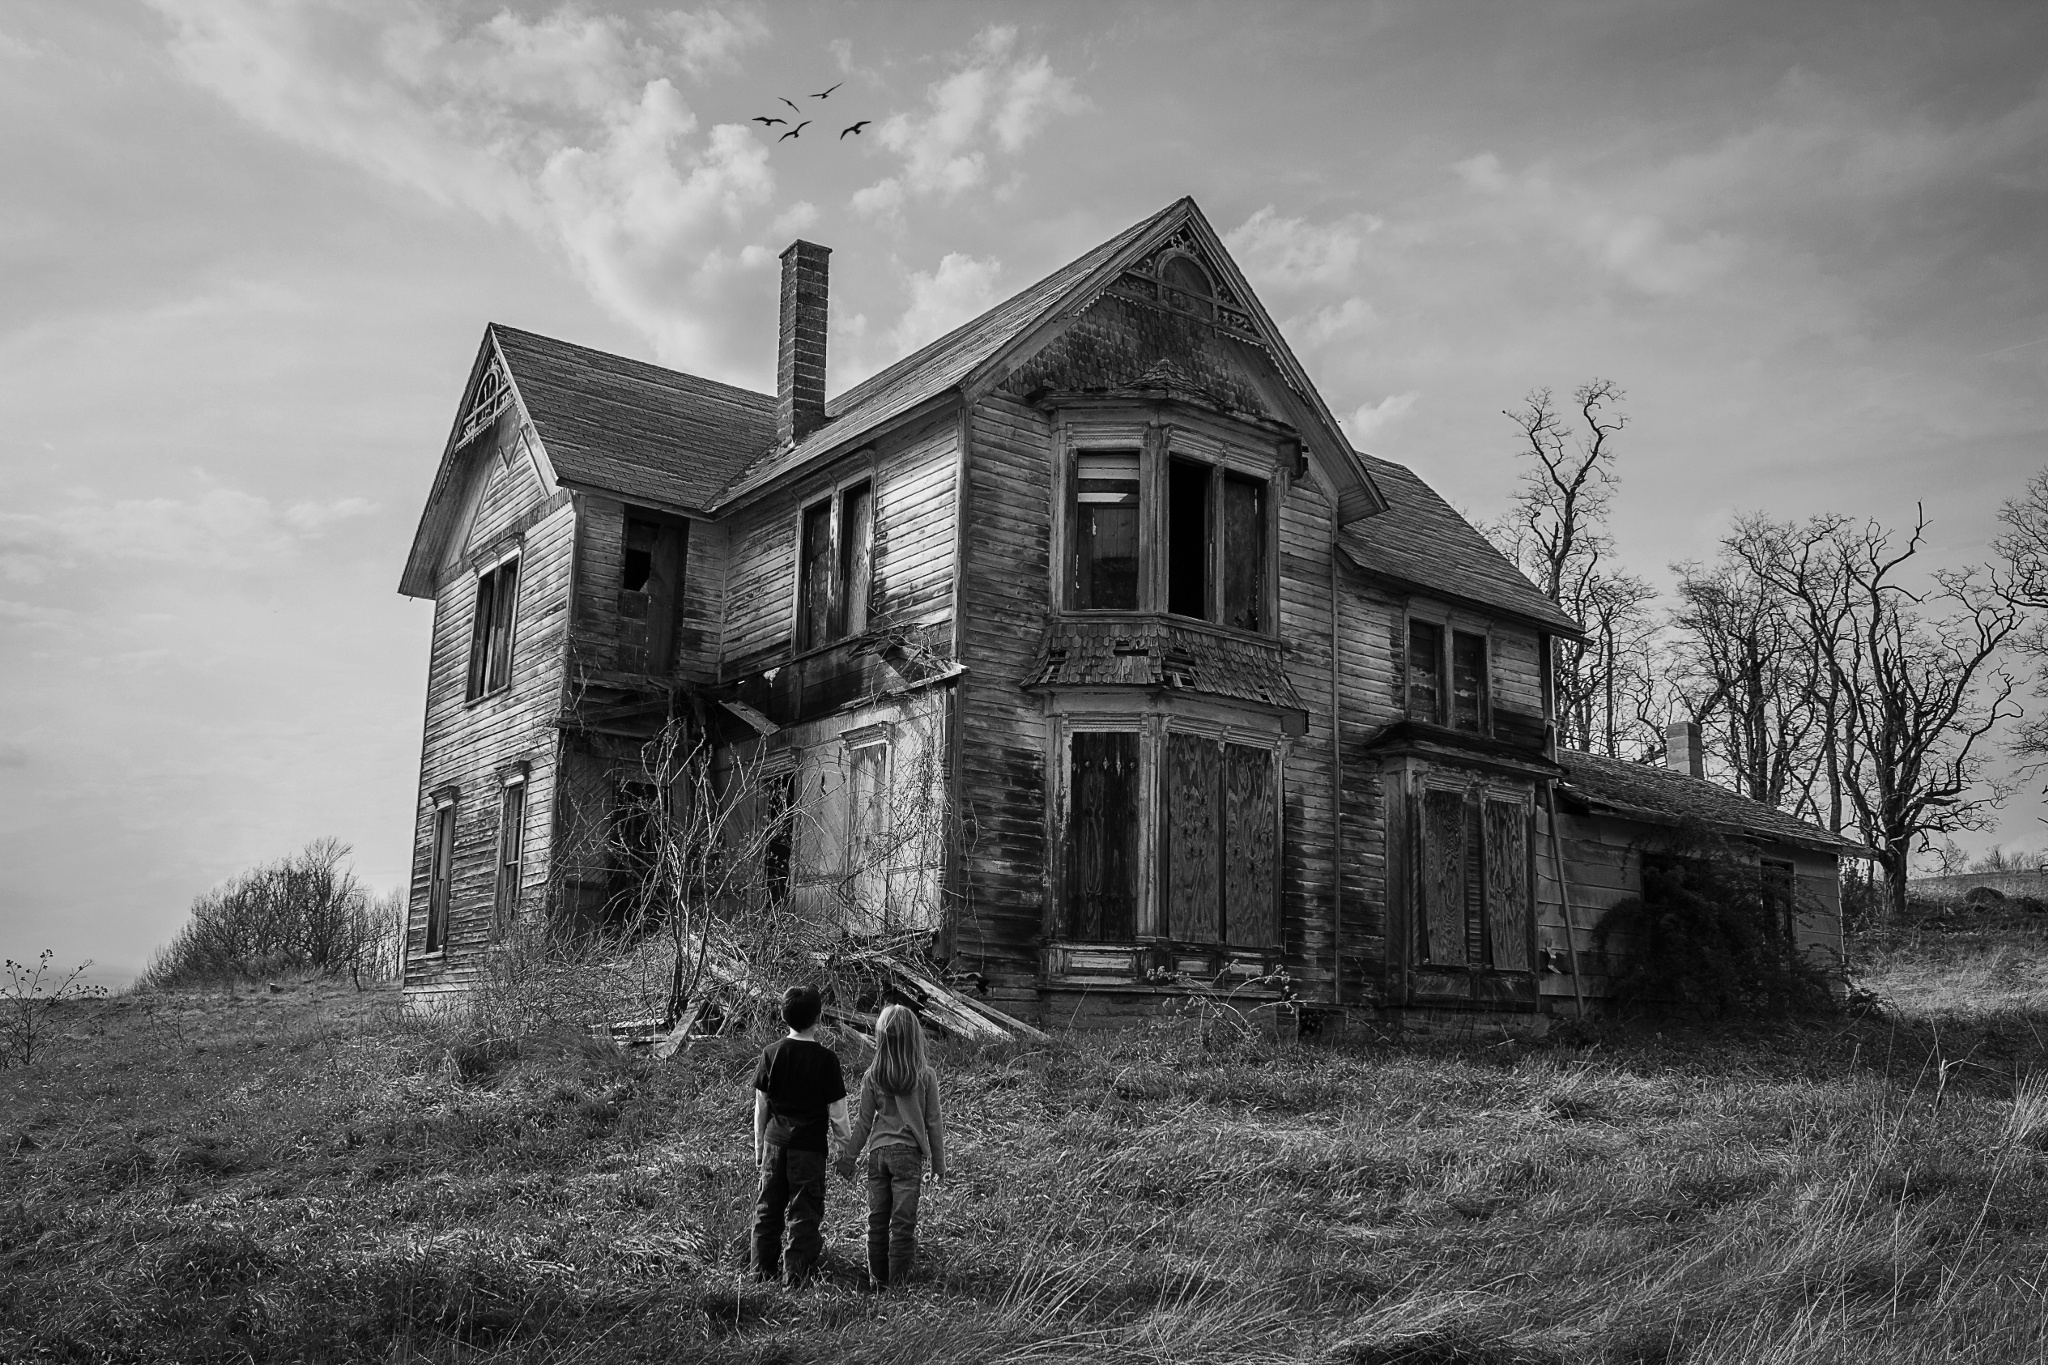 Create An Atmosphere Of Horror With This Haunted House Photo Tutorial